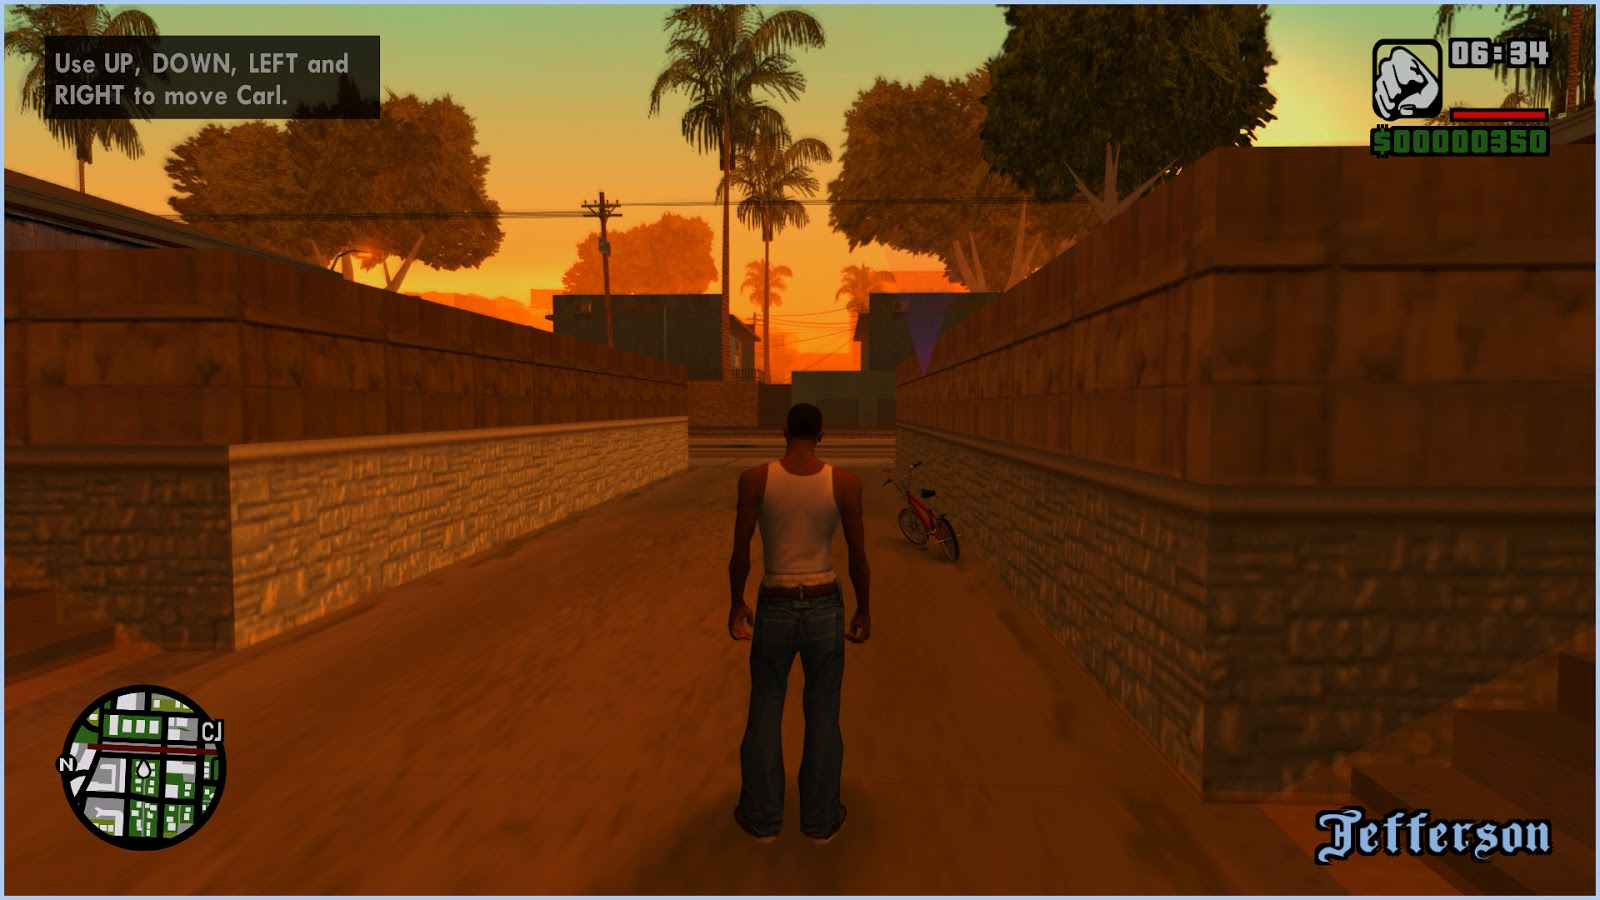 Gta San Andreas Pc Game Free Download Highly Compressed {Vanderpool